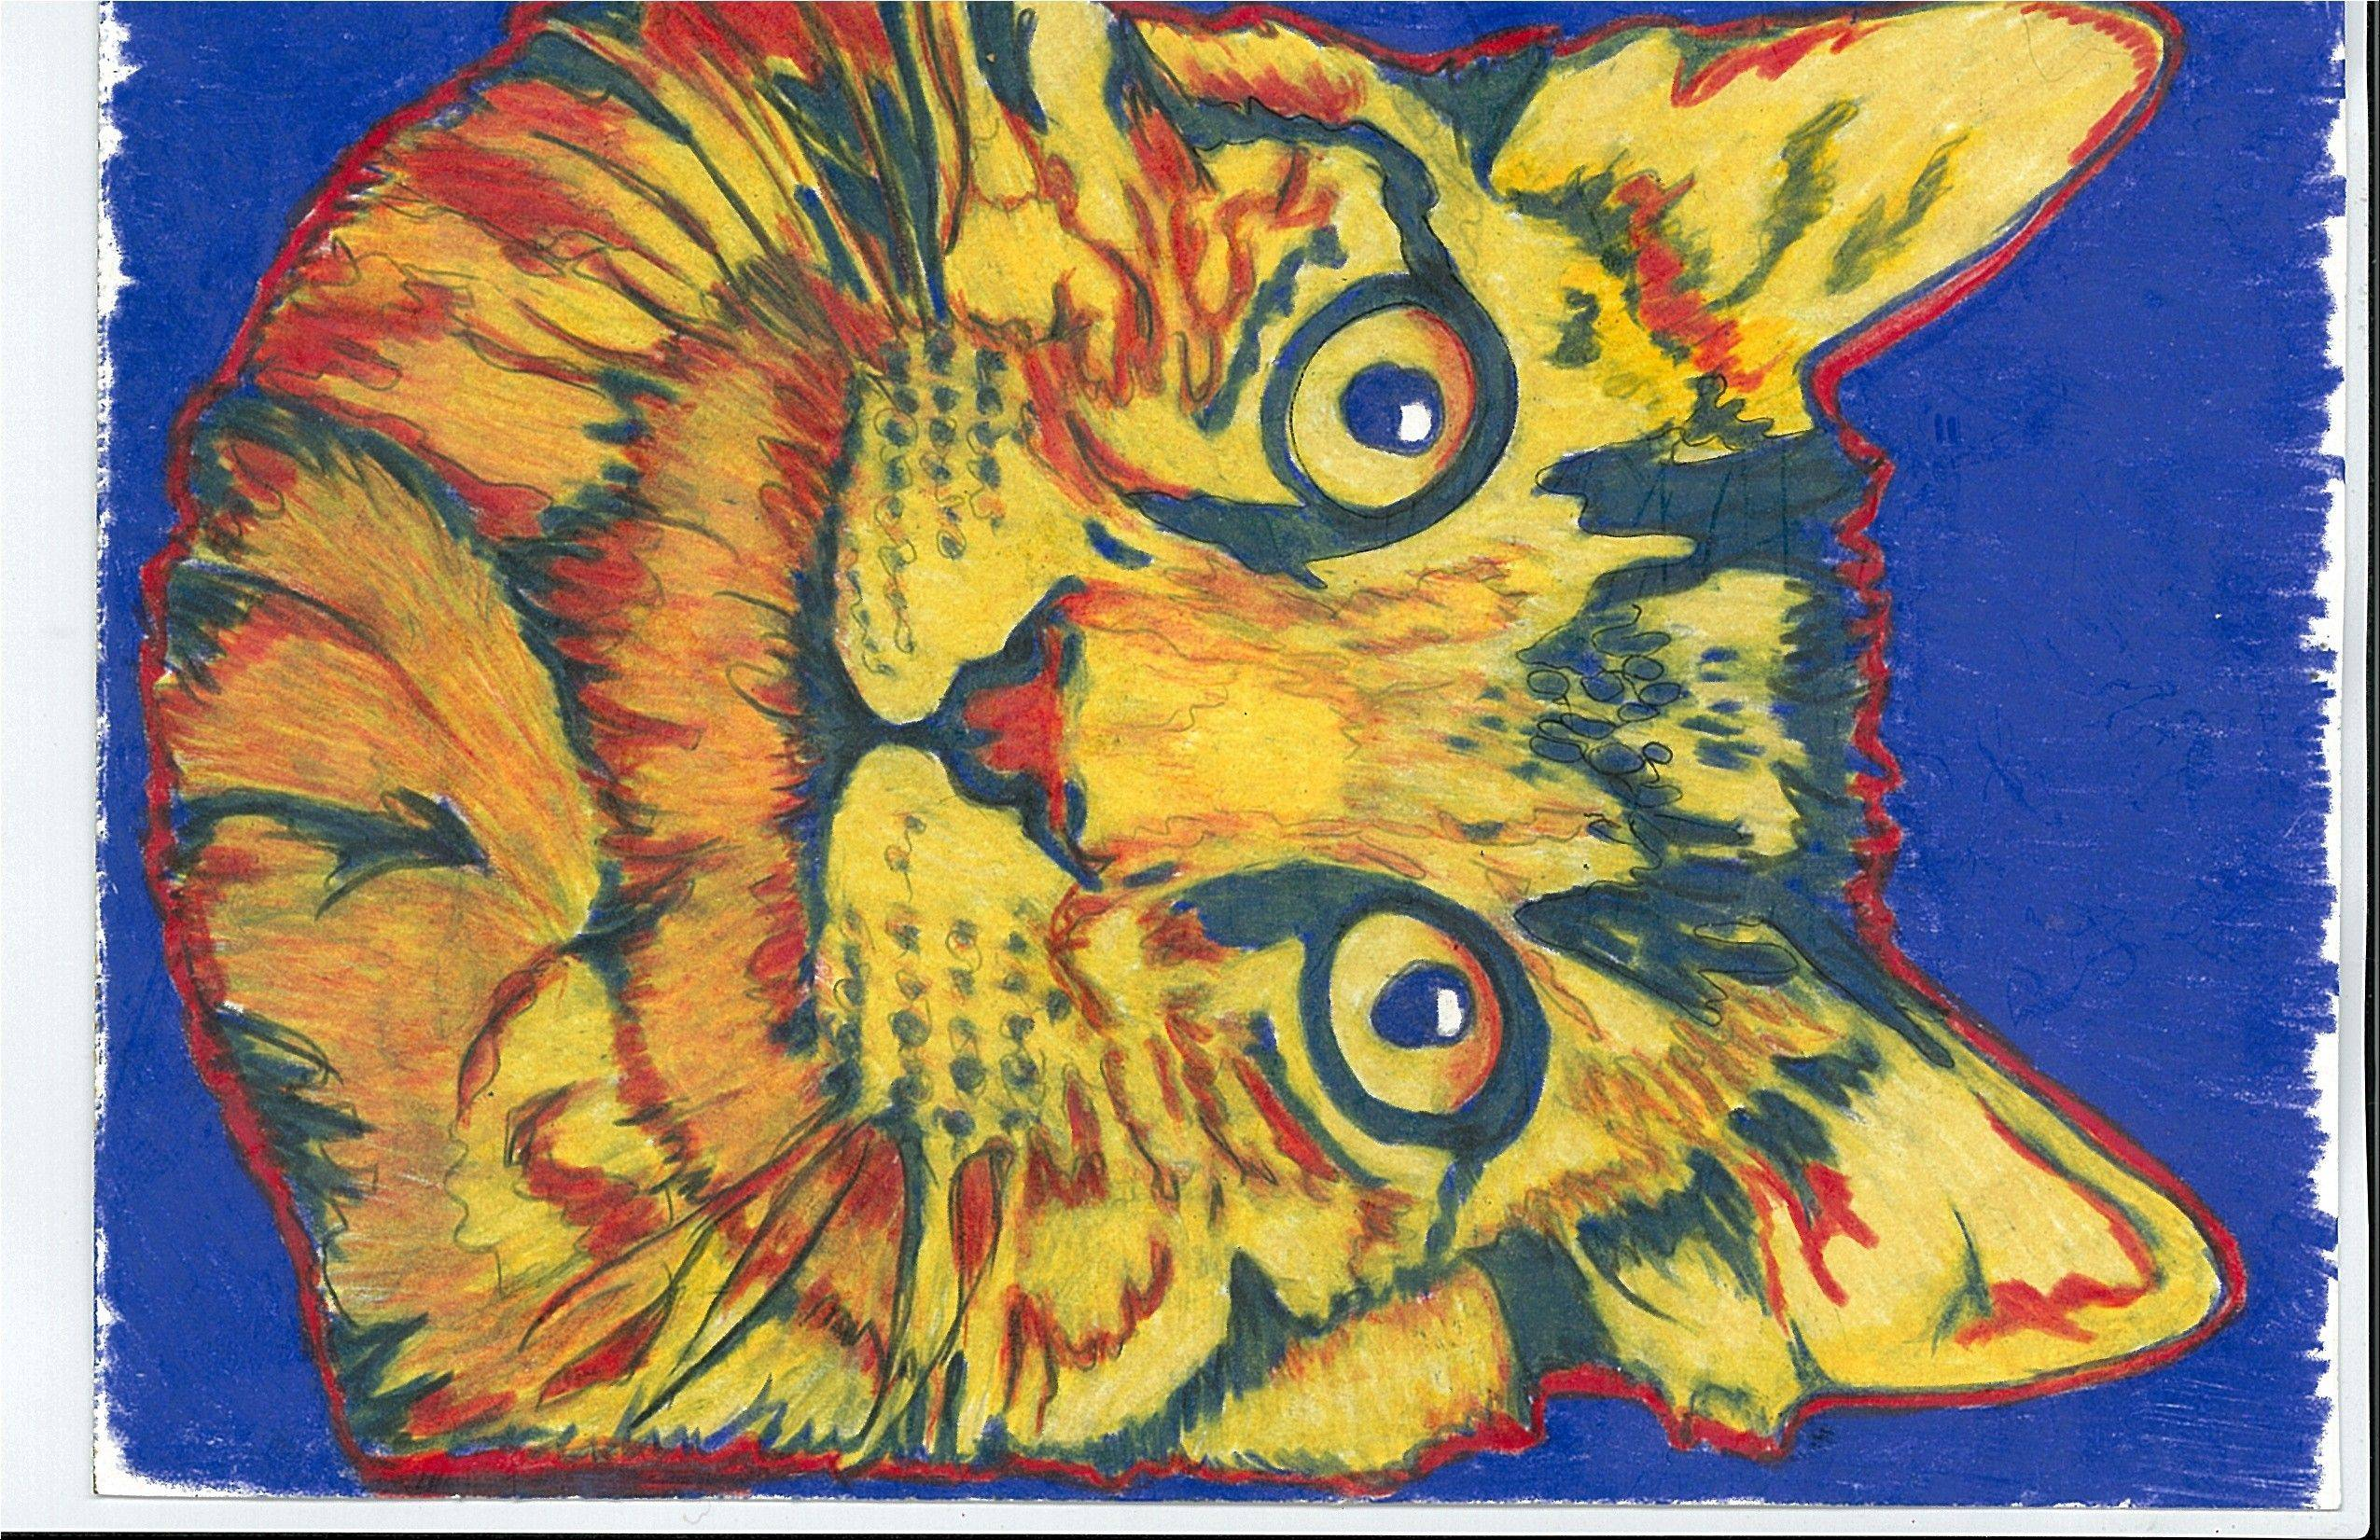 Cat Guardians' annual art auction fundraiser takes place in Naperville.